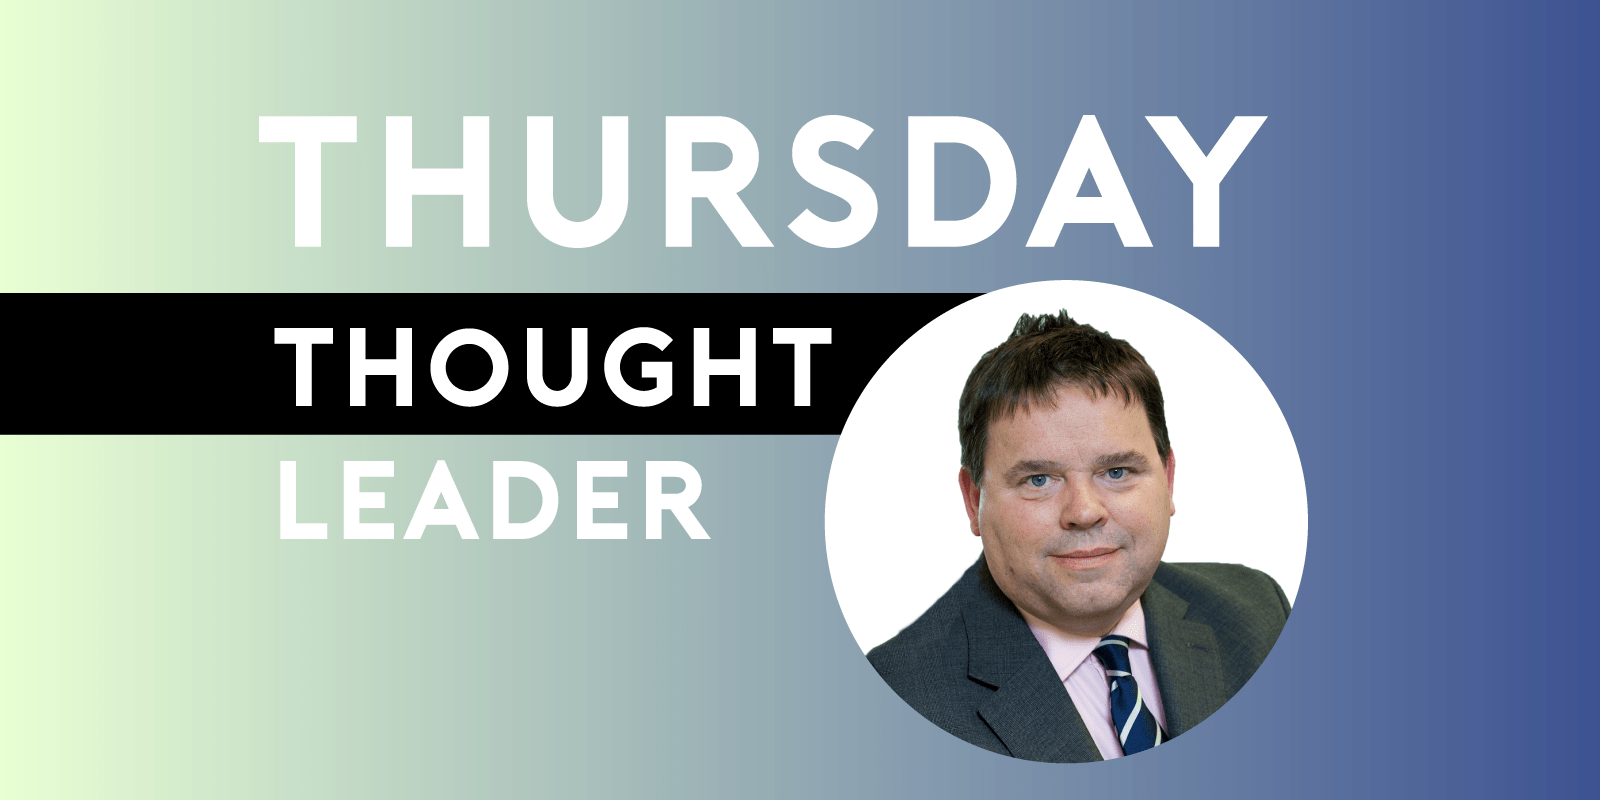 Benedict Burke of Crawford and Company is LegalNet Inc's Thursday Thought Leader